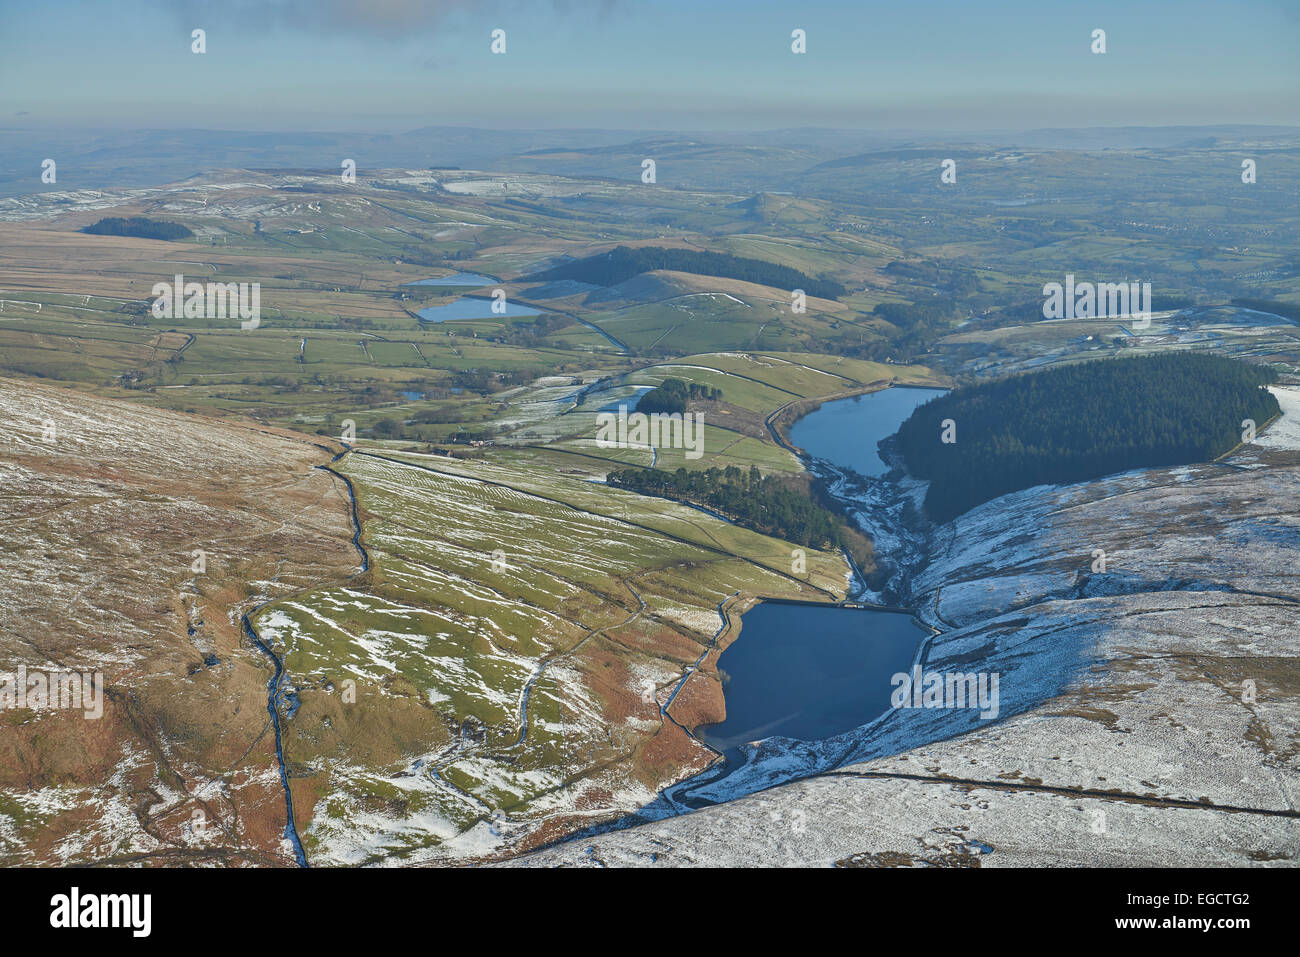 Aerial photograph of Ogden Reservoirs and Fell Wood. - Stock Image